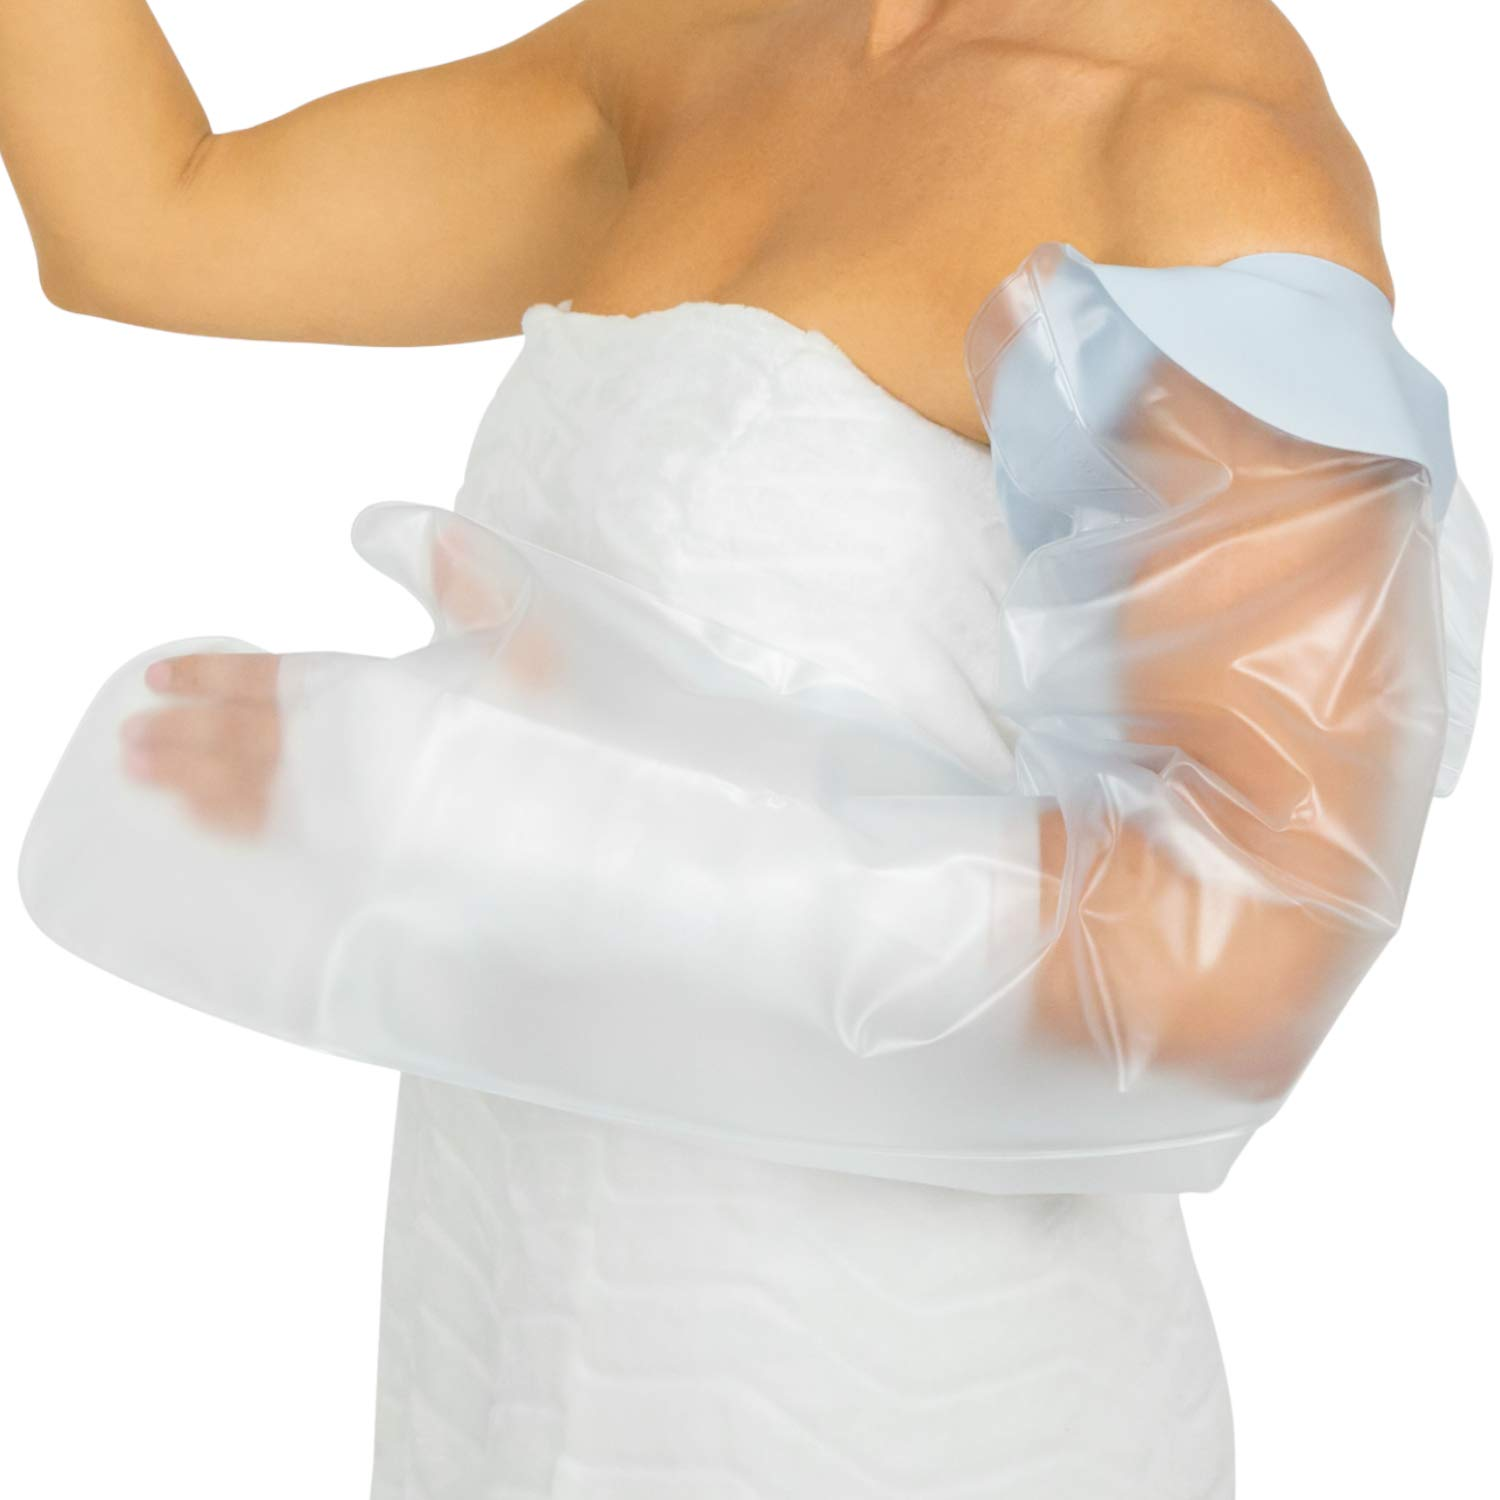 Vive Arm Cast Cover for Shower - Waterproof Bandage Protector for Bath - Adult Water Resistant Reusable Dry Bag Sleeve for Broken Hand and Wrist- Watertight Protection - Tight, Universal Seal